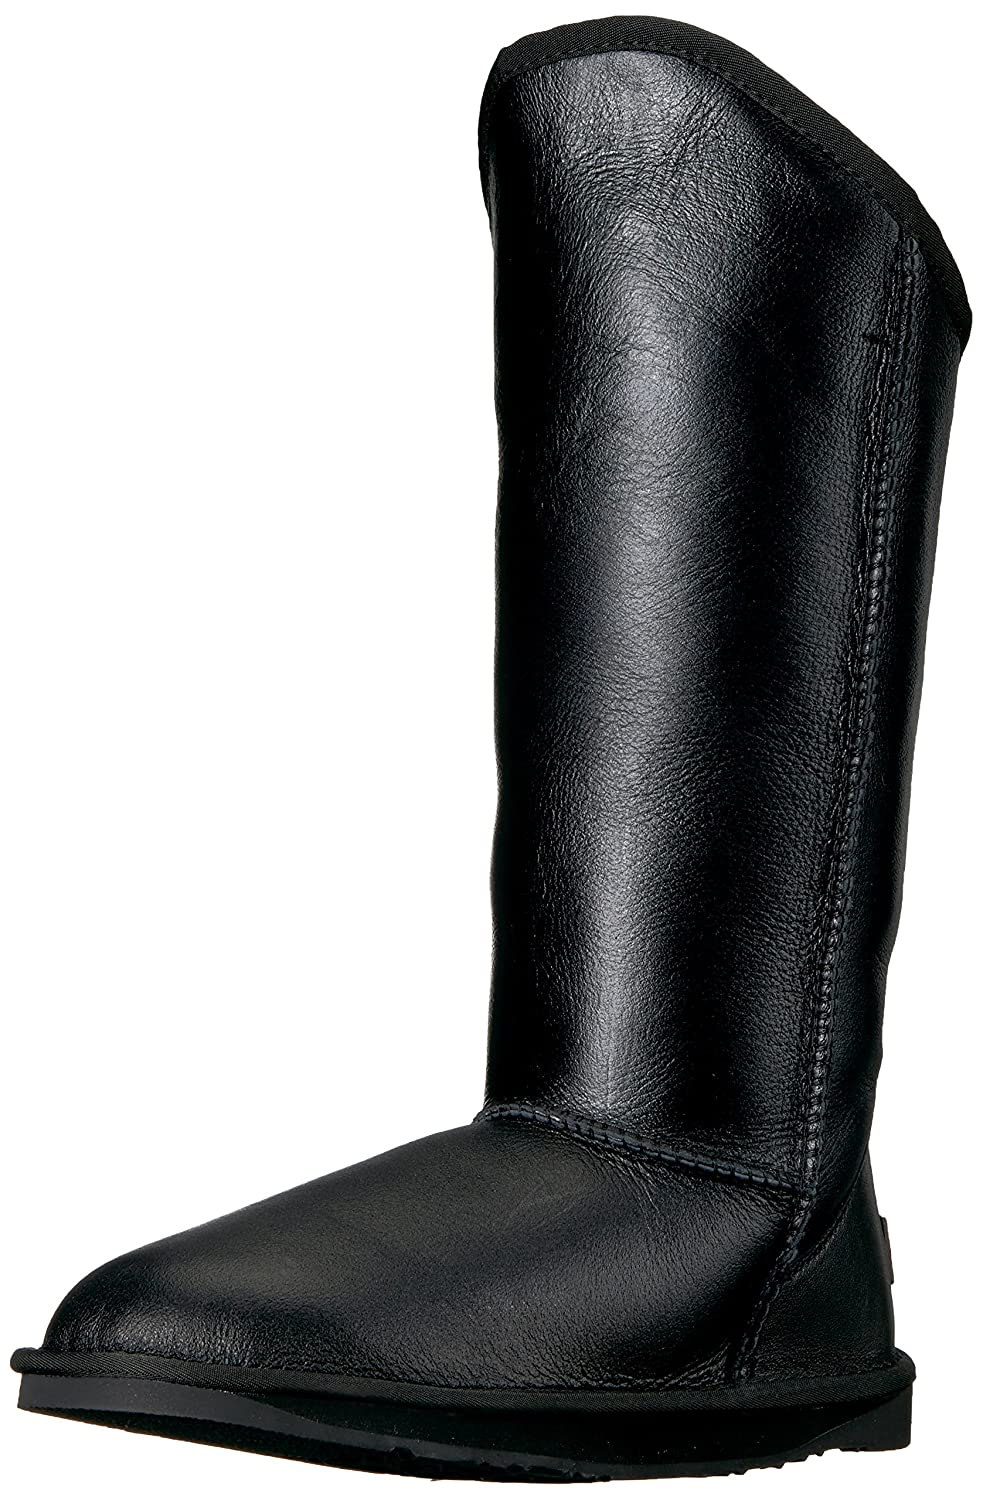 Luxe Co.. Womens Cosy Tall Closed Toe Mid-Calf Fashion Boots B075FV4B5G 6 Standard US Width US|Black